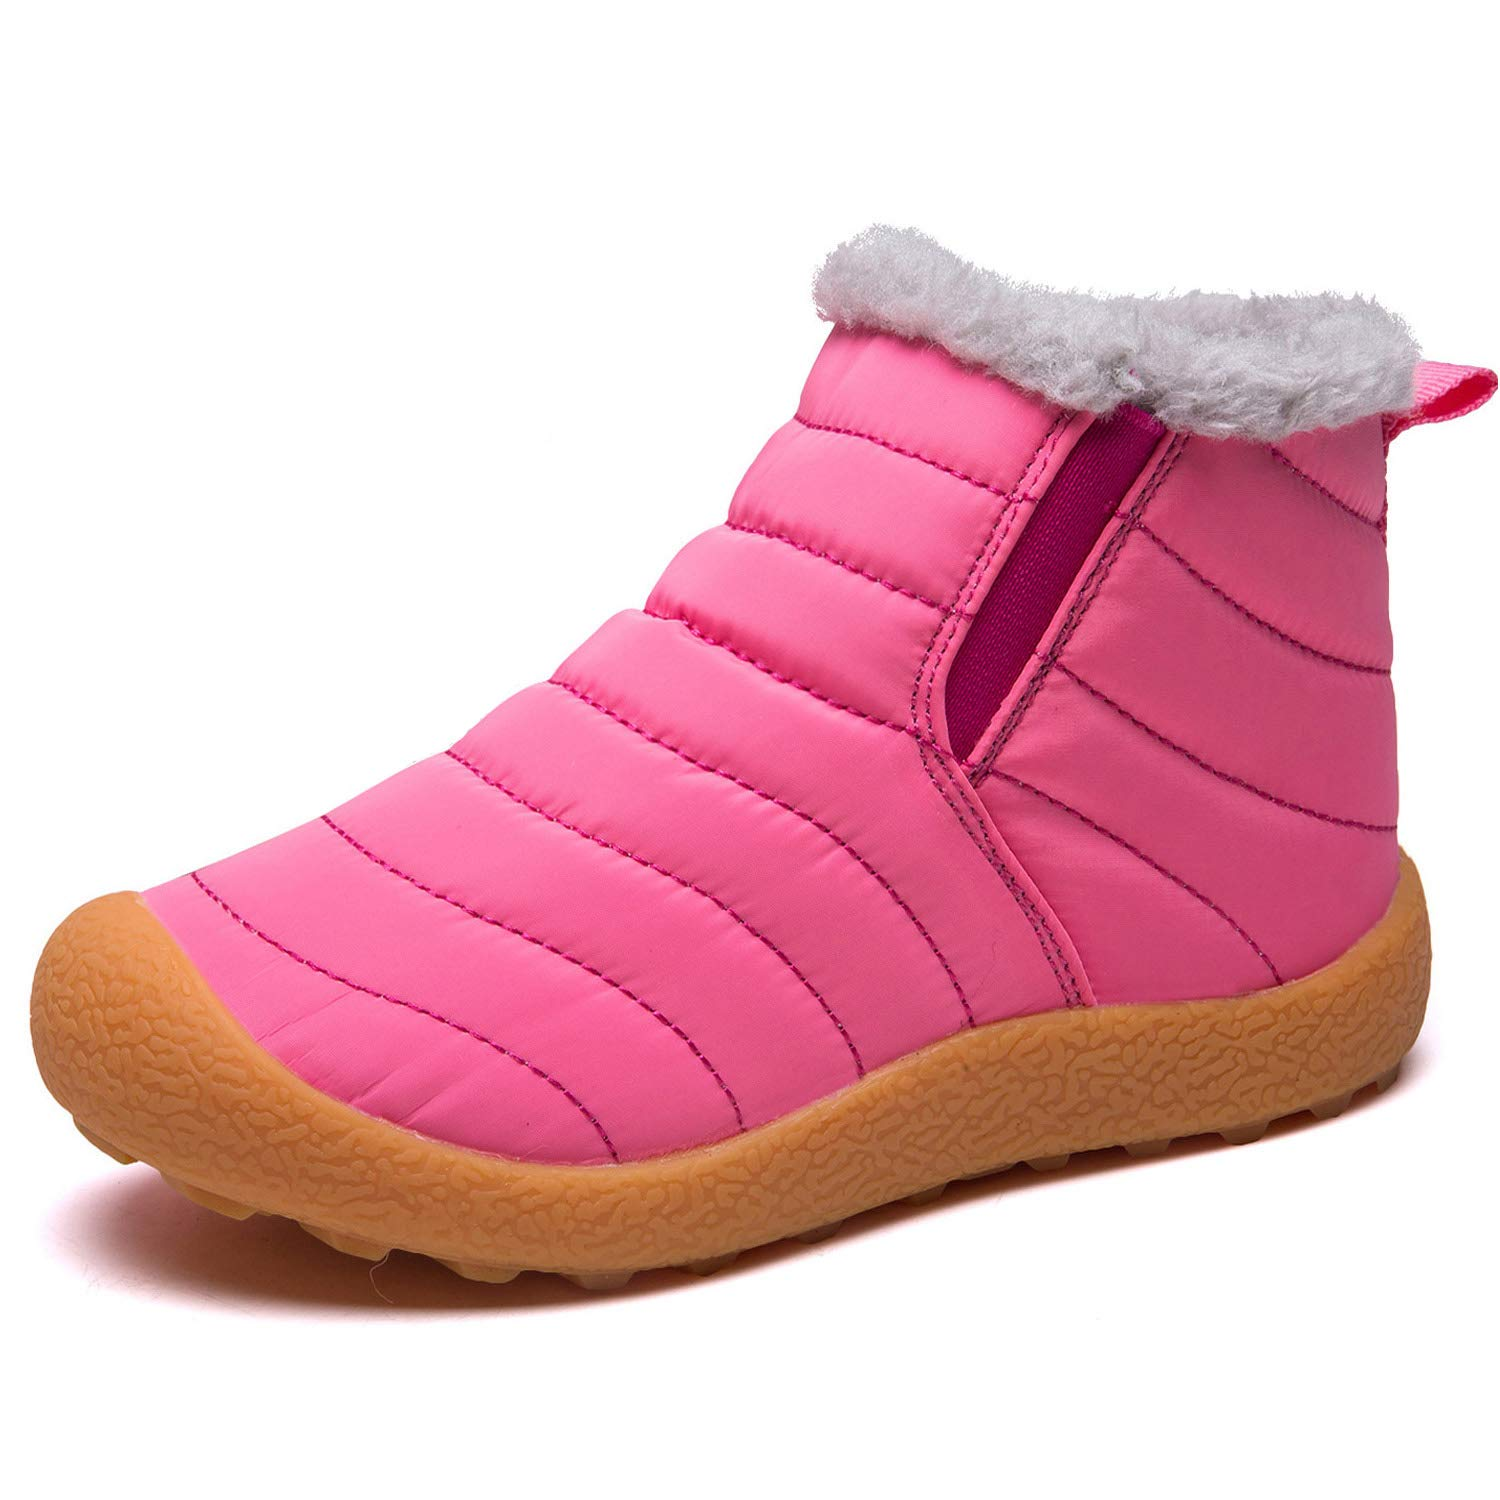 LINGTOM Kid's Waterproof Winter Boots Snow Sneakers Boots Lace up Shoes with Fur Lining, Pink 2 Little Kid